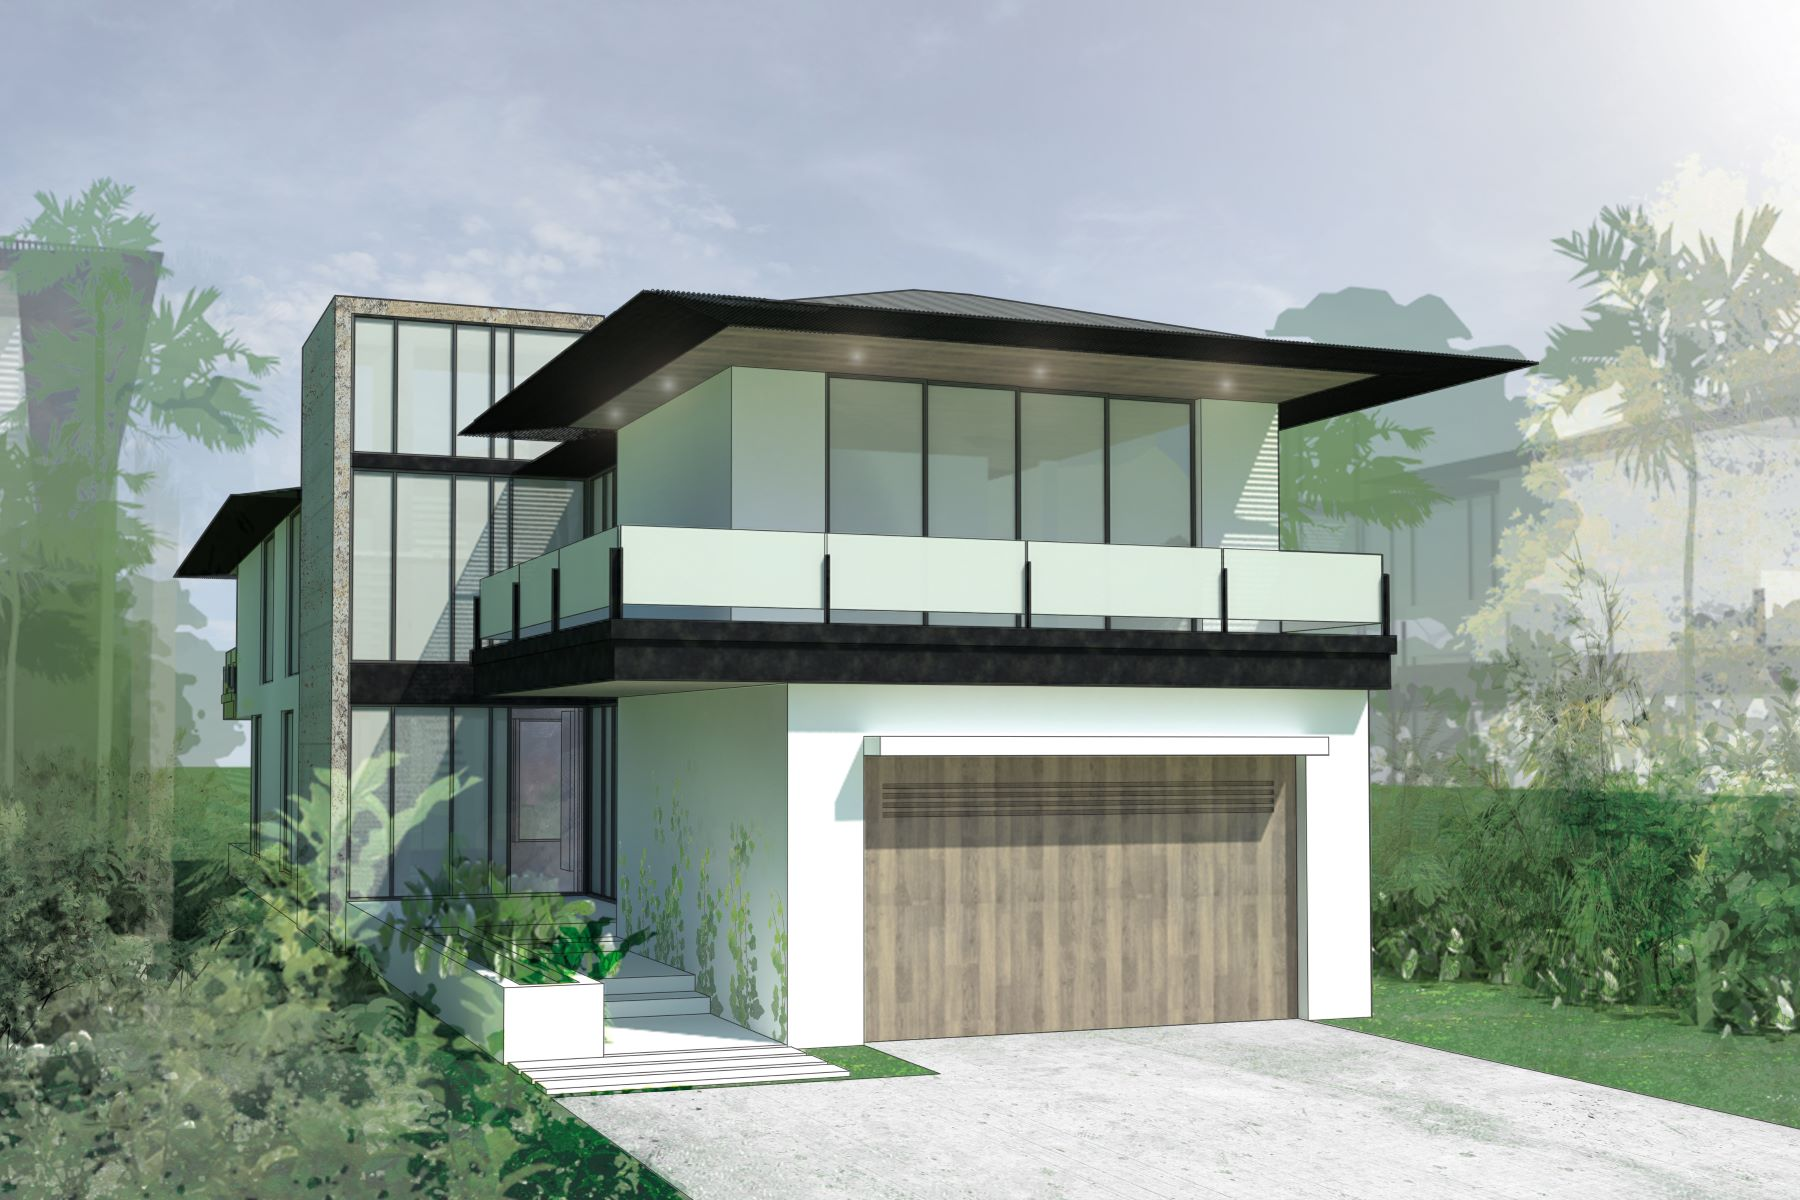 Single Family Homes のために 売買 アット Direct Riverfront New Construction 4844 S Harbor Drive Vero Beach, フロリダ 32967 アメリカ